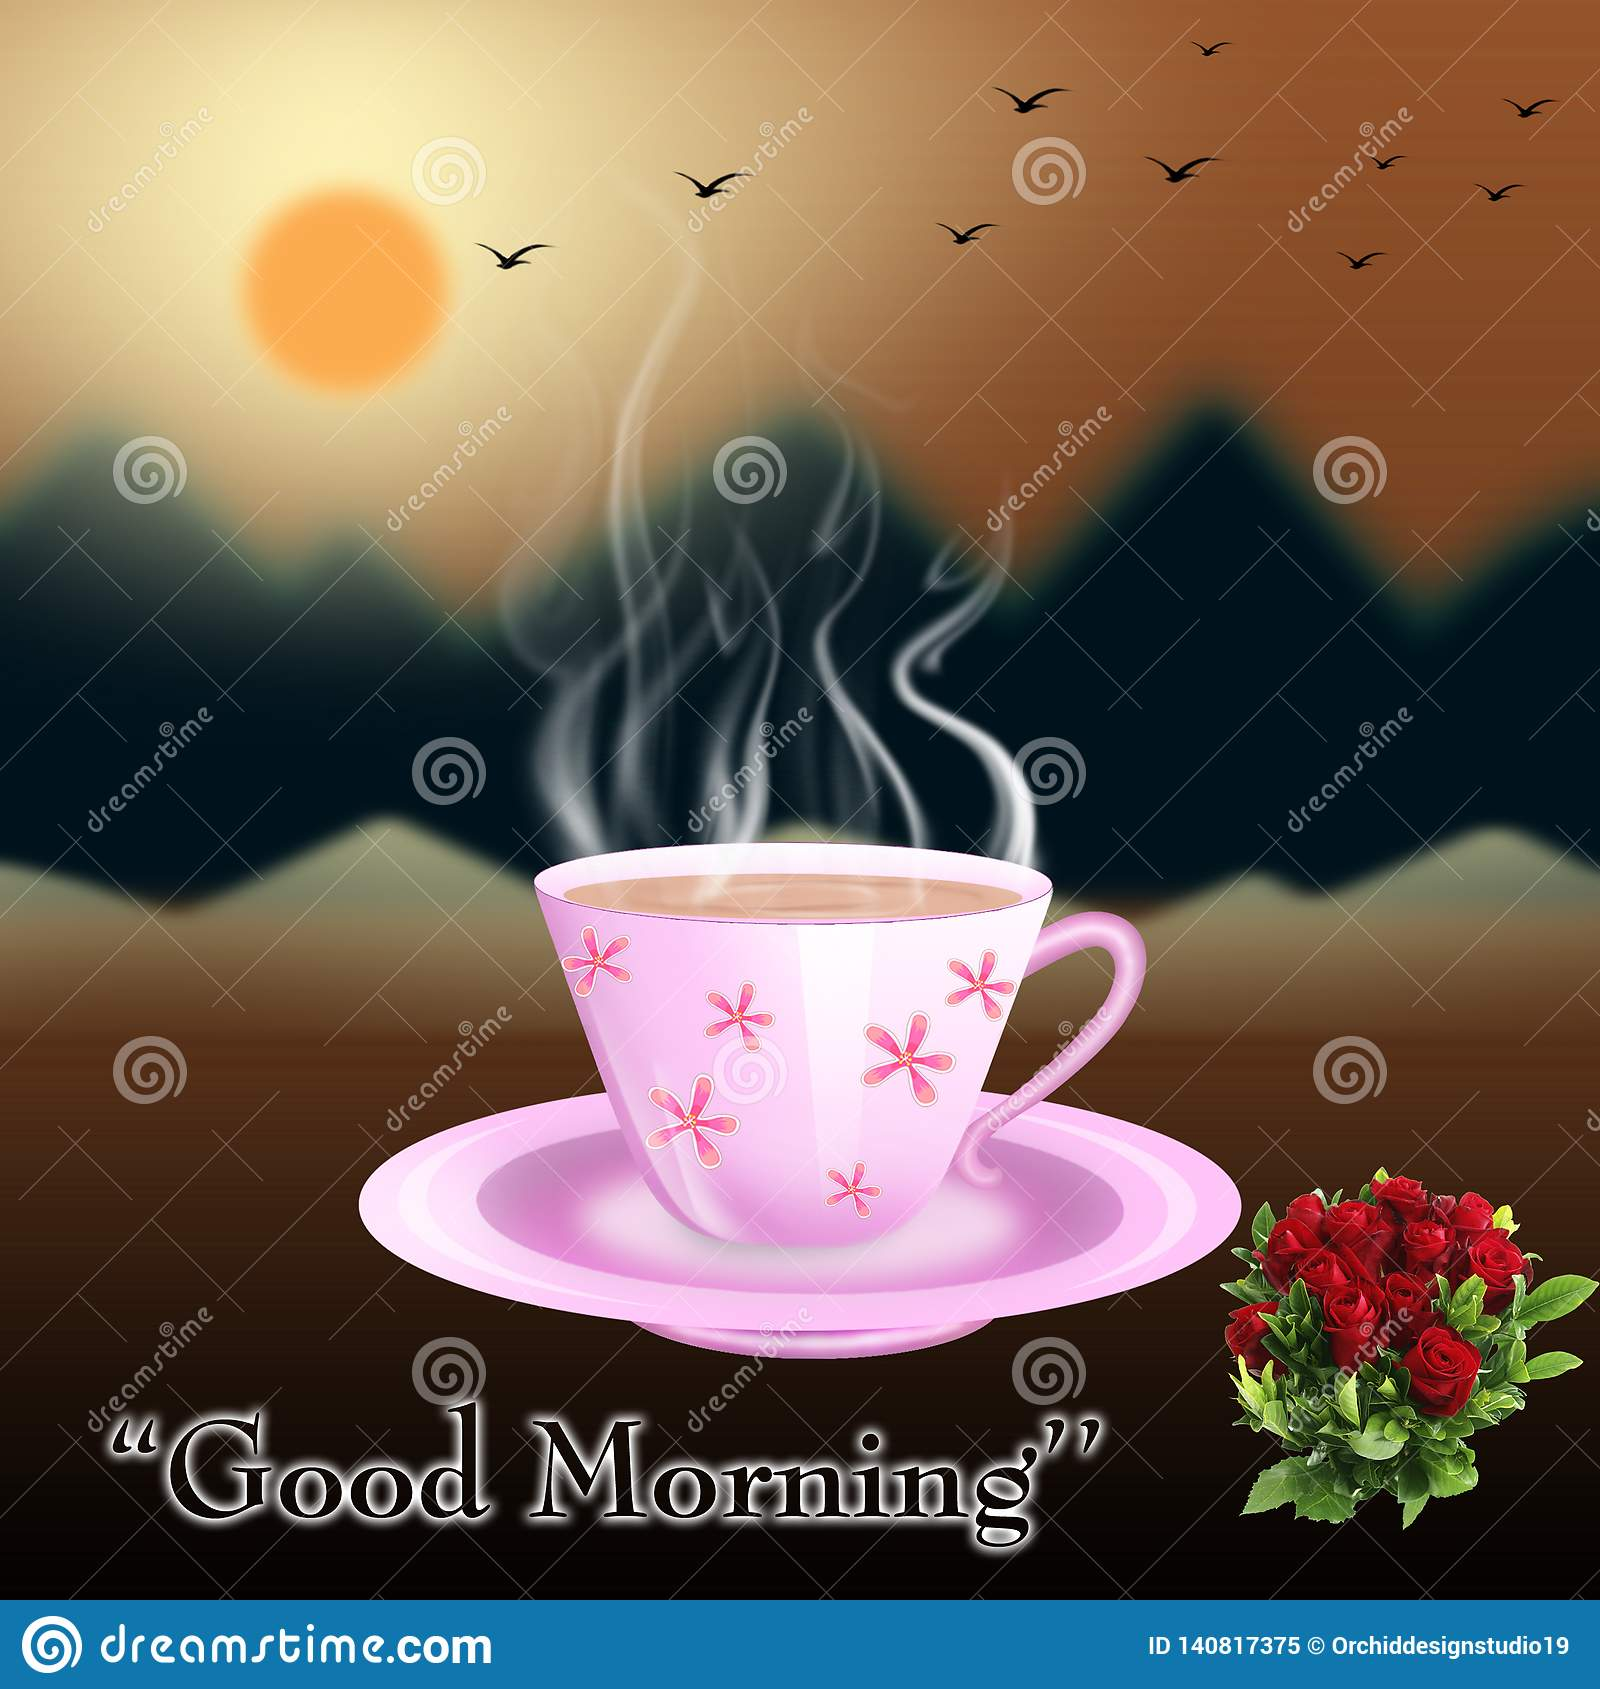 Tea Cup With Good Morning Title Image Stock Illustration